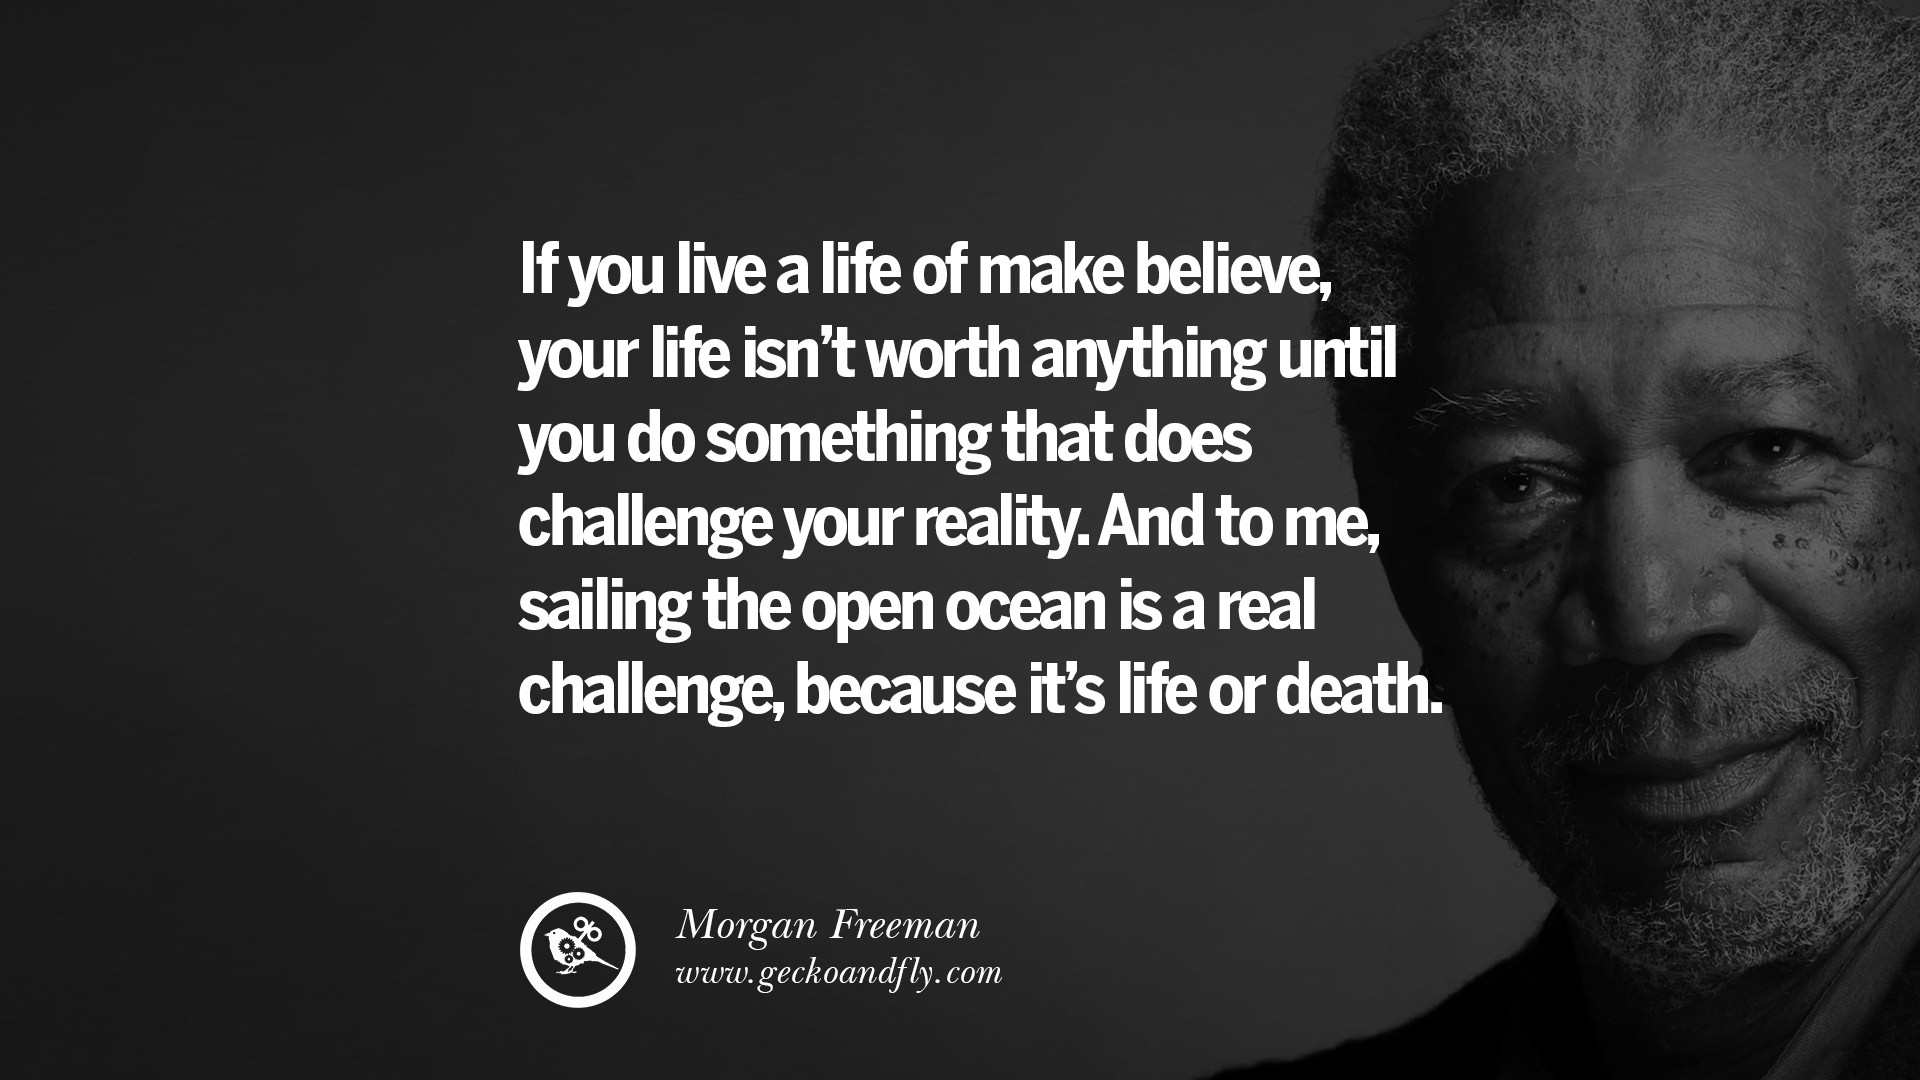 Quotes On Life 10 Morgan Freeman Quotes On Life Death Success And Struggle